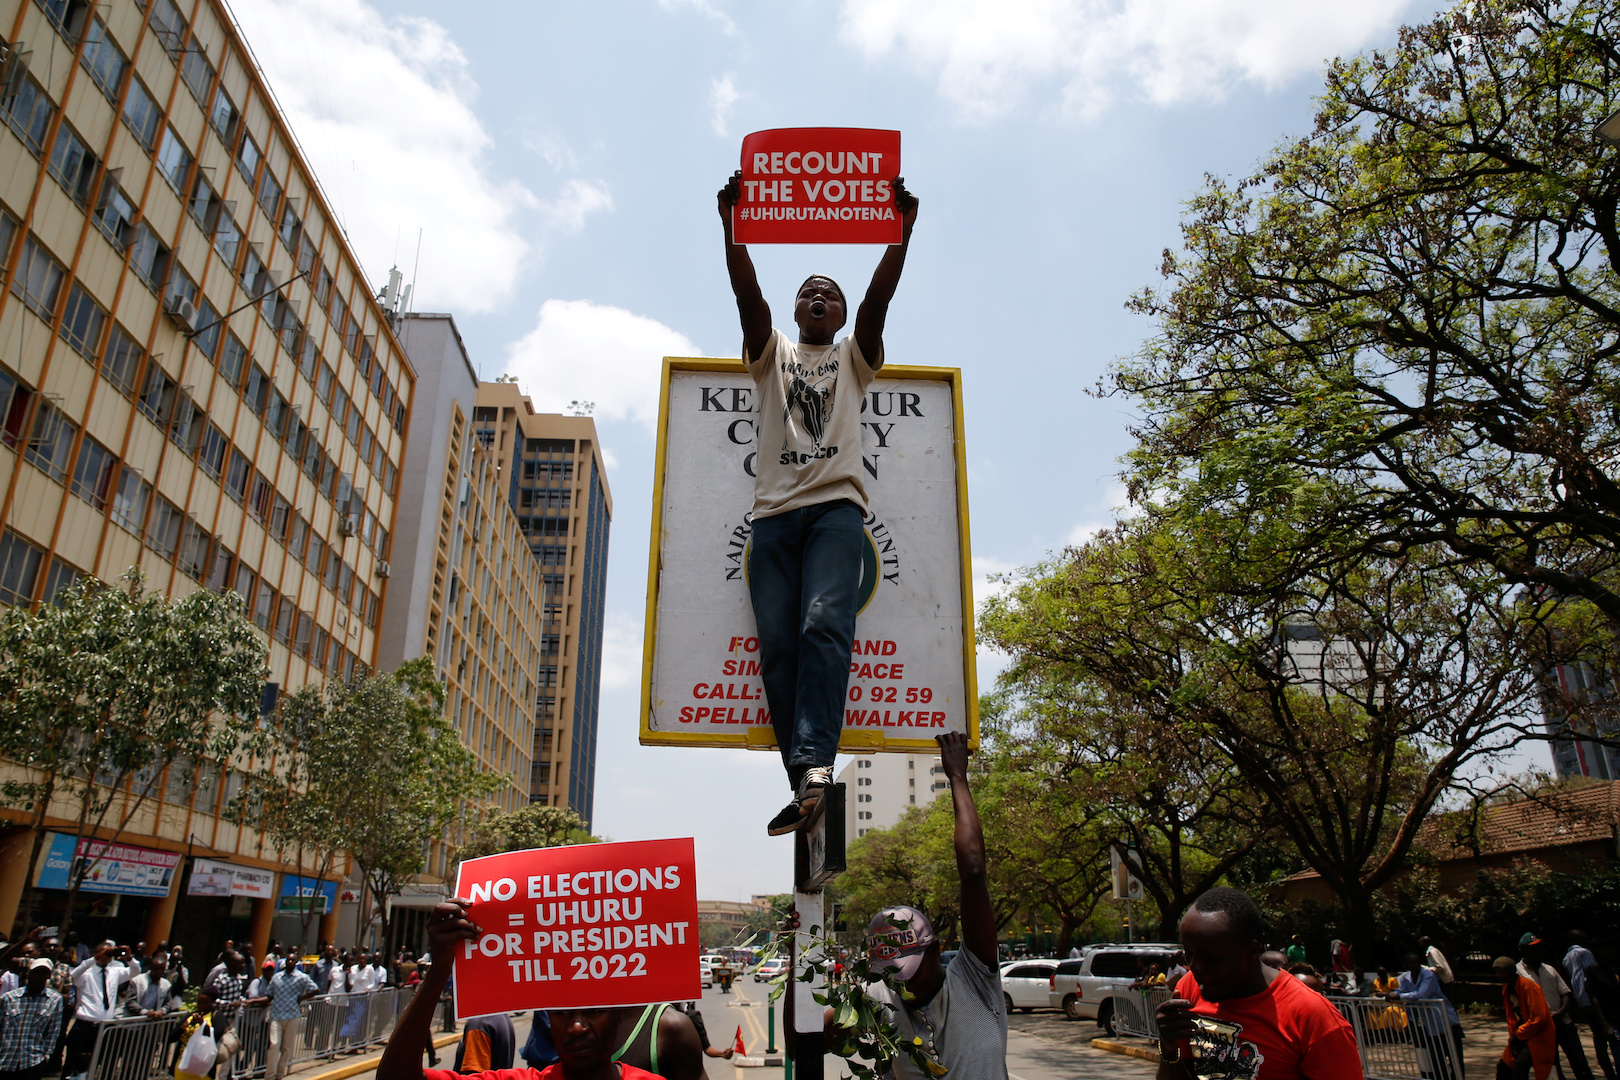 A supporter of Kenya's President Uhuru Kenyatta carries a placard as they demonstrate outside the Supreme Court in protest of the nullification of Kenyattaís victory by the Supreme Court Judges in Nairobi, Kenya, September 19, 2017.